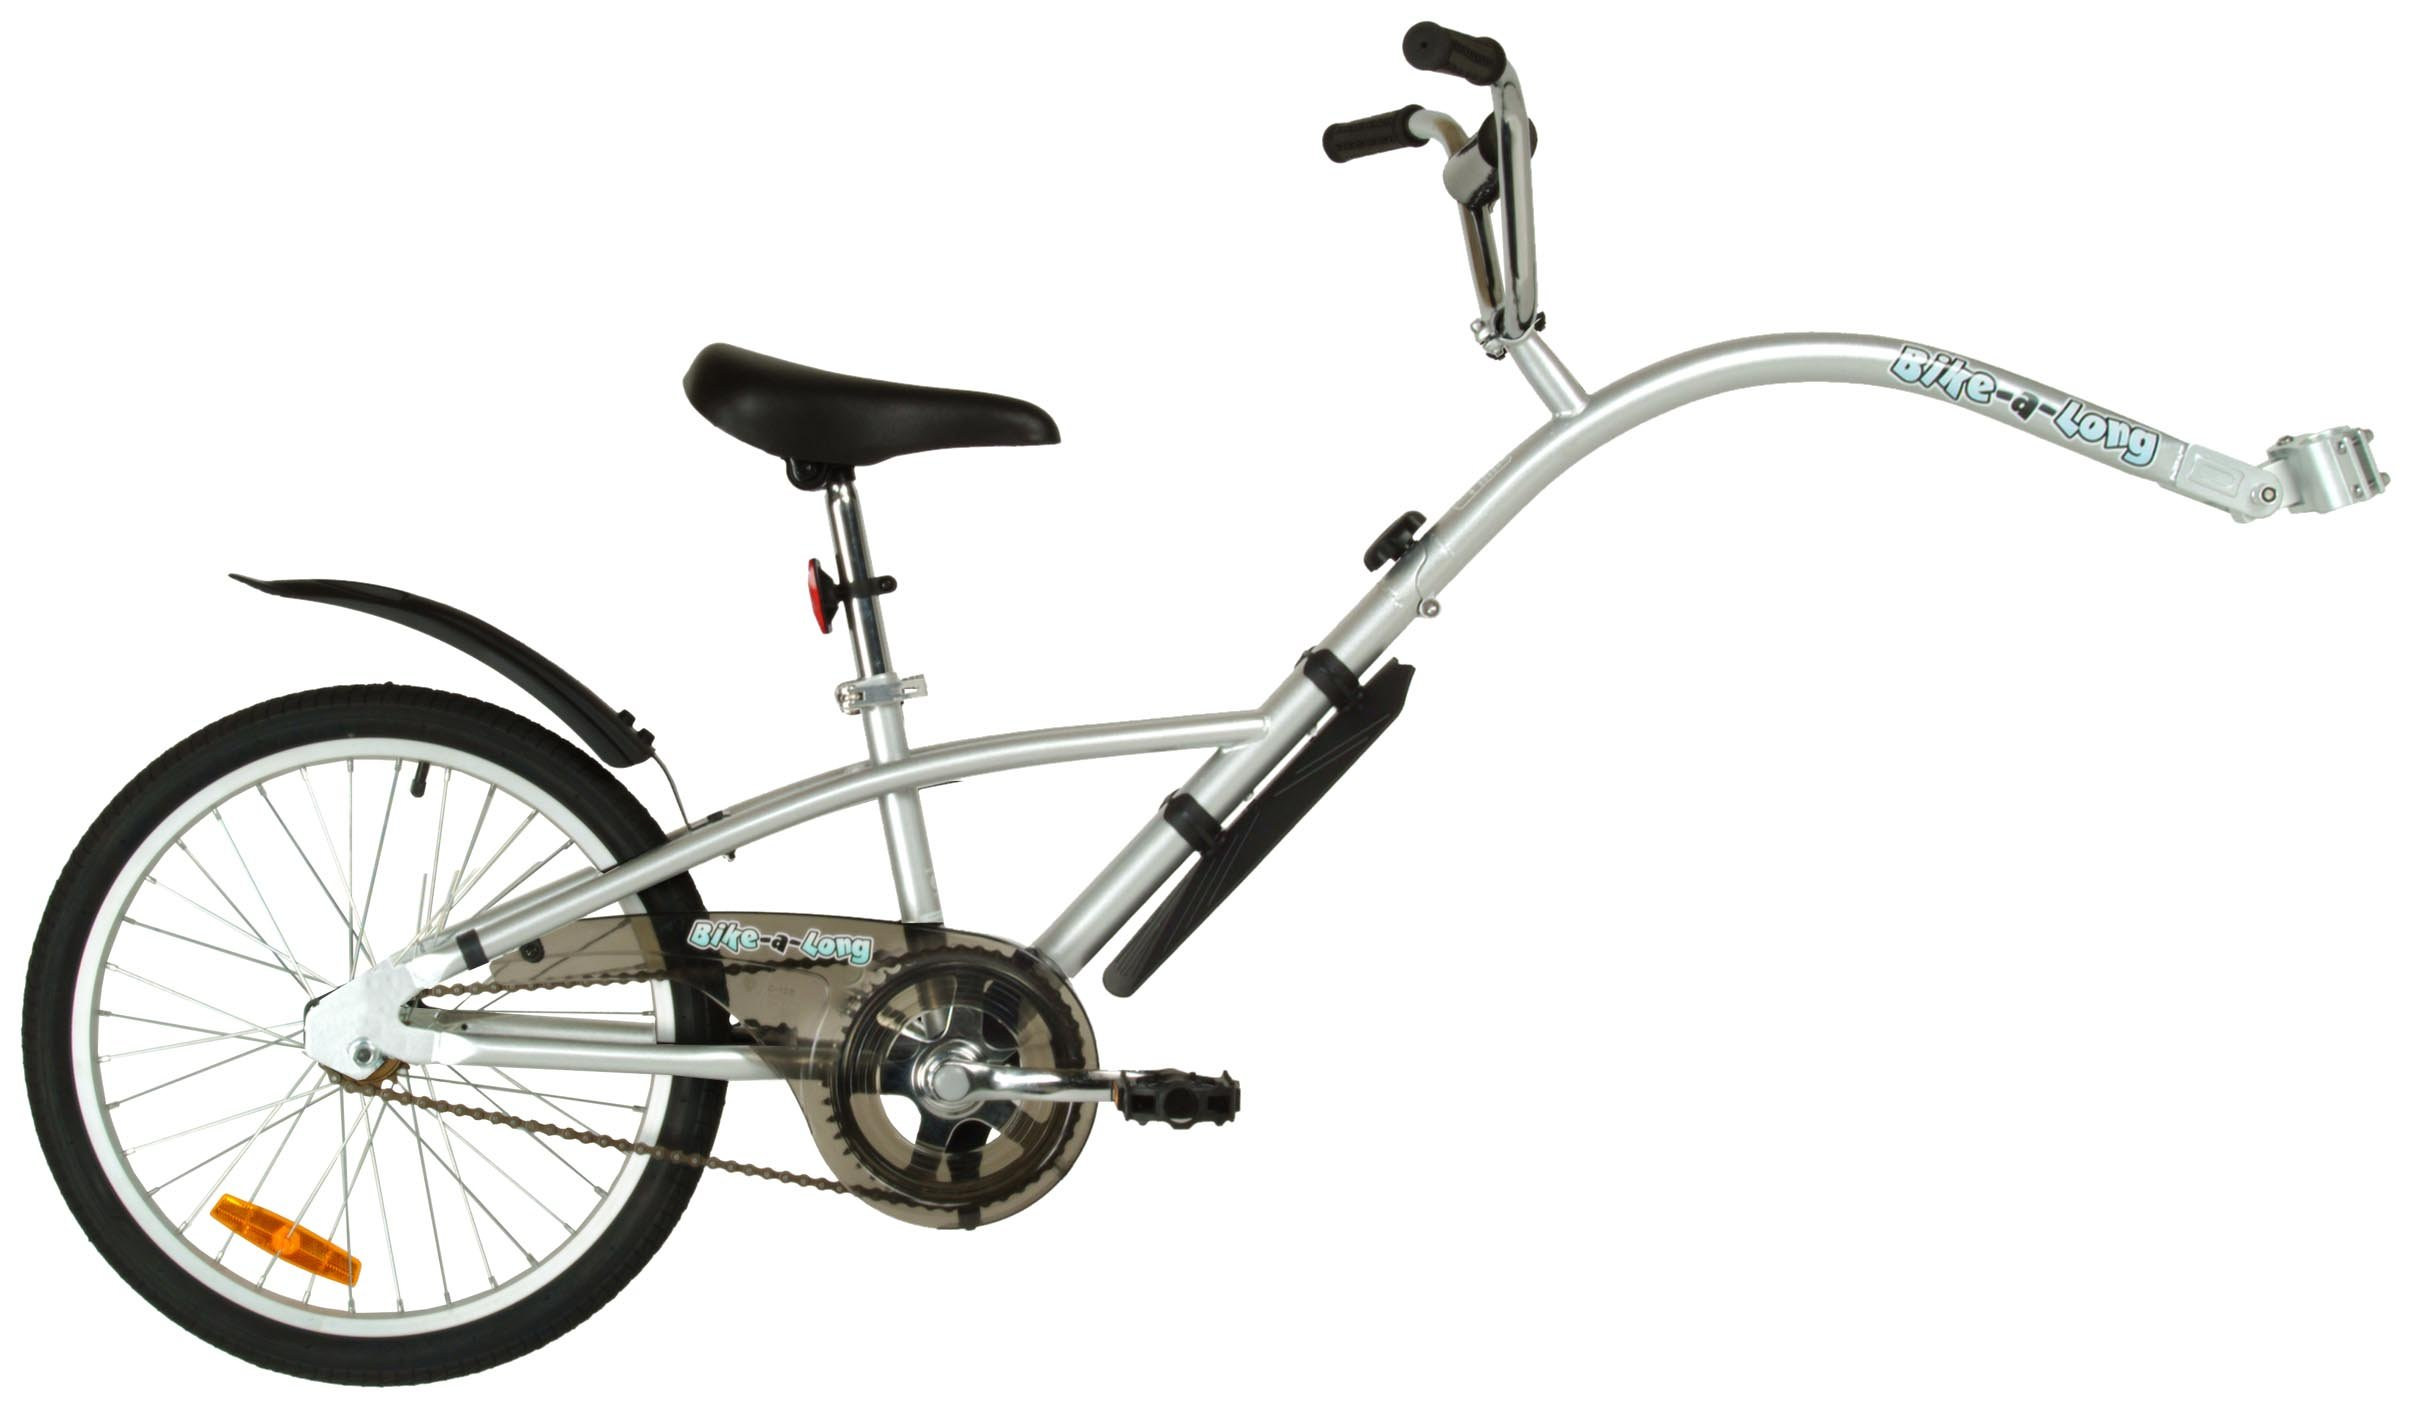 Bike-A-Long Trailer (Silver) by Bike-A-Long